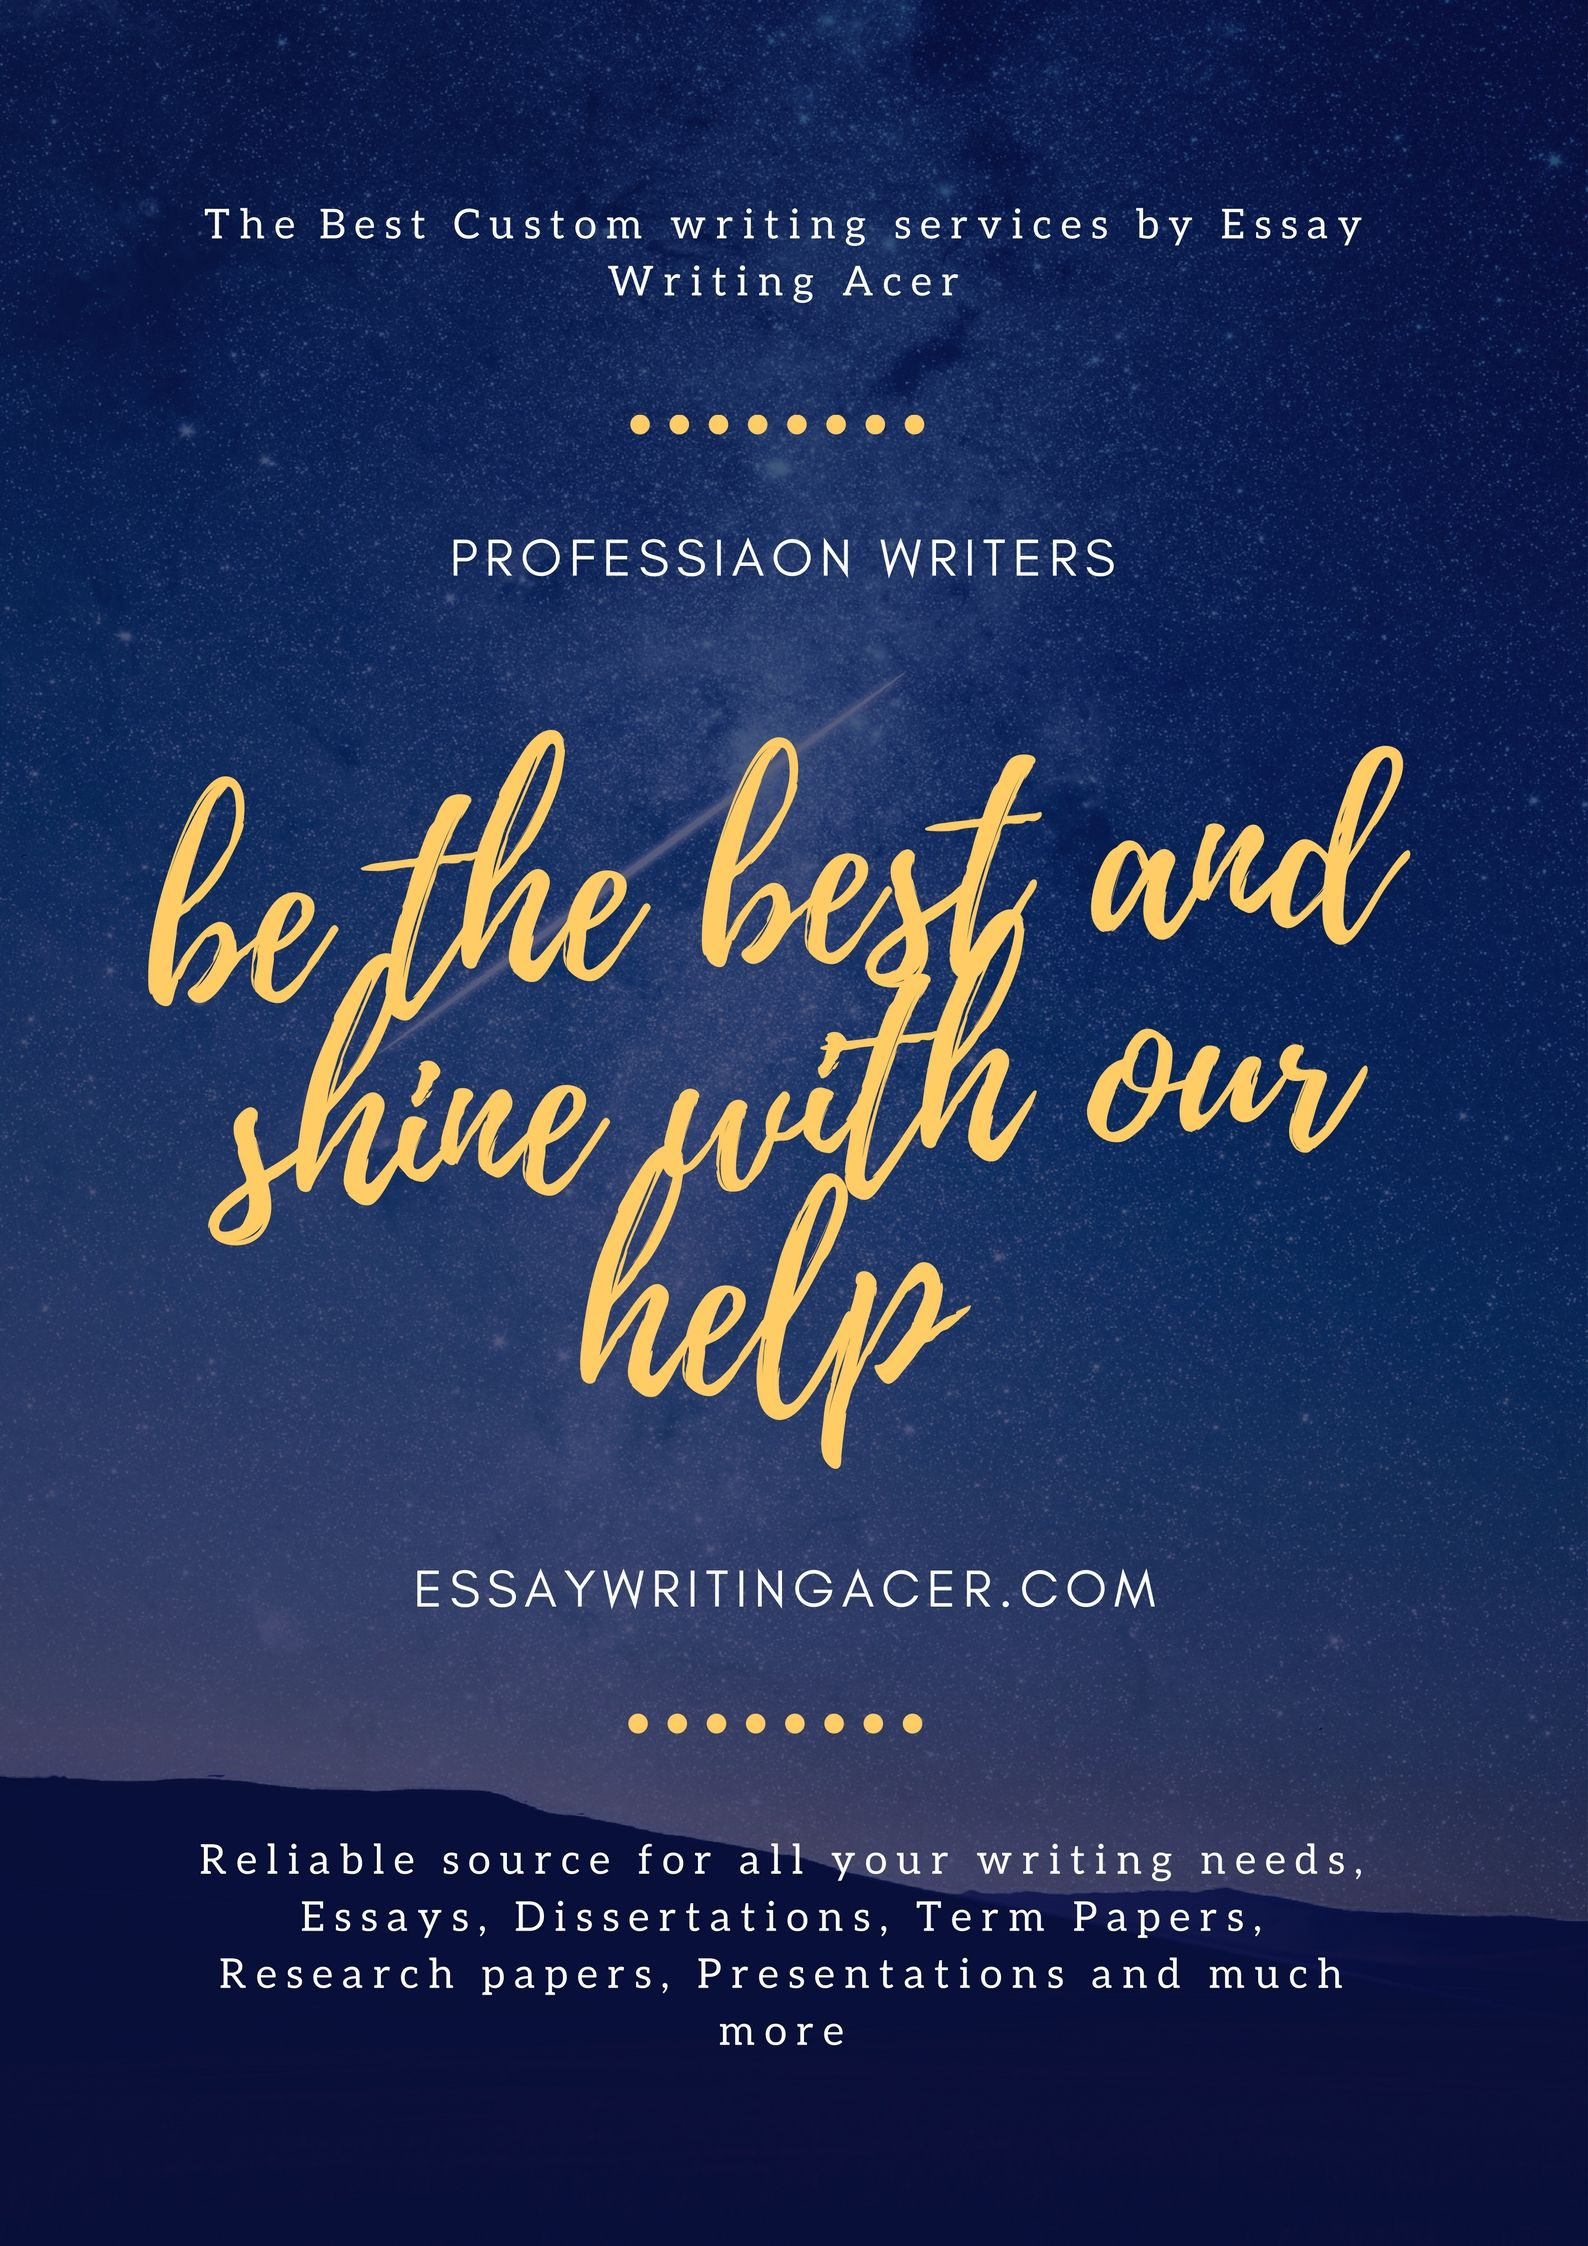 7 Tips on Writing an Effective Scholarship or College Essay | Fastweb